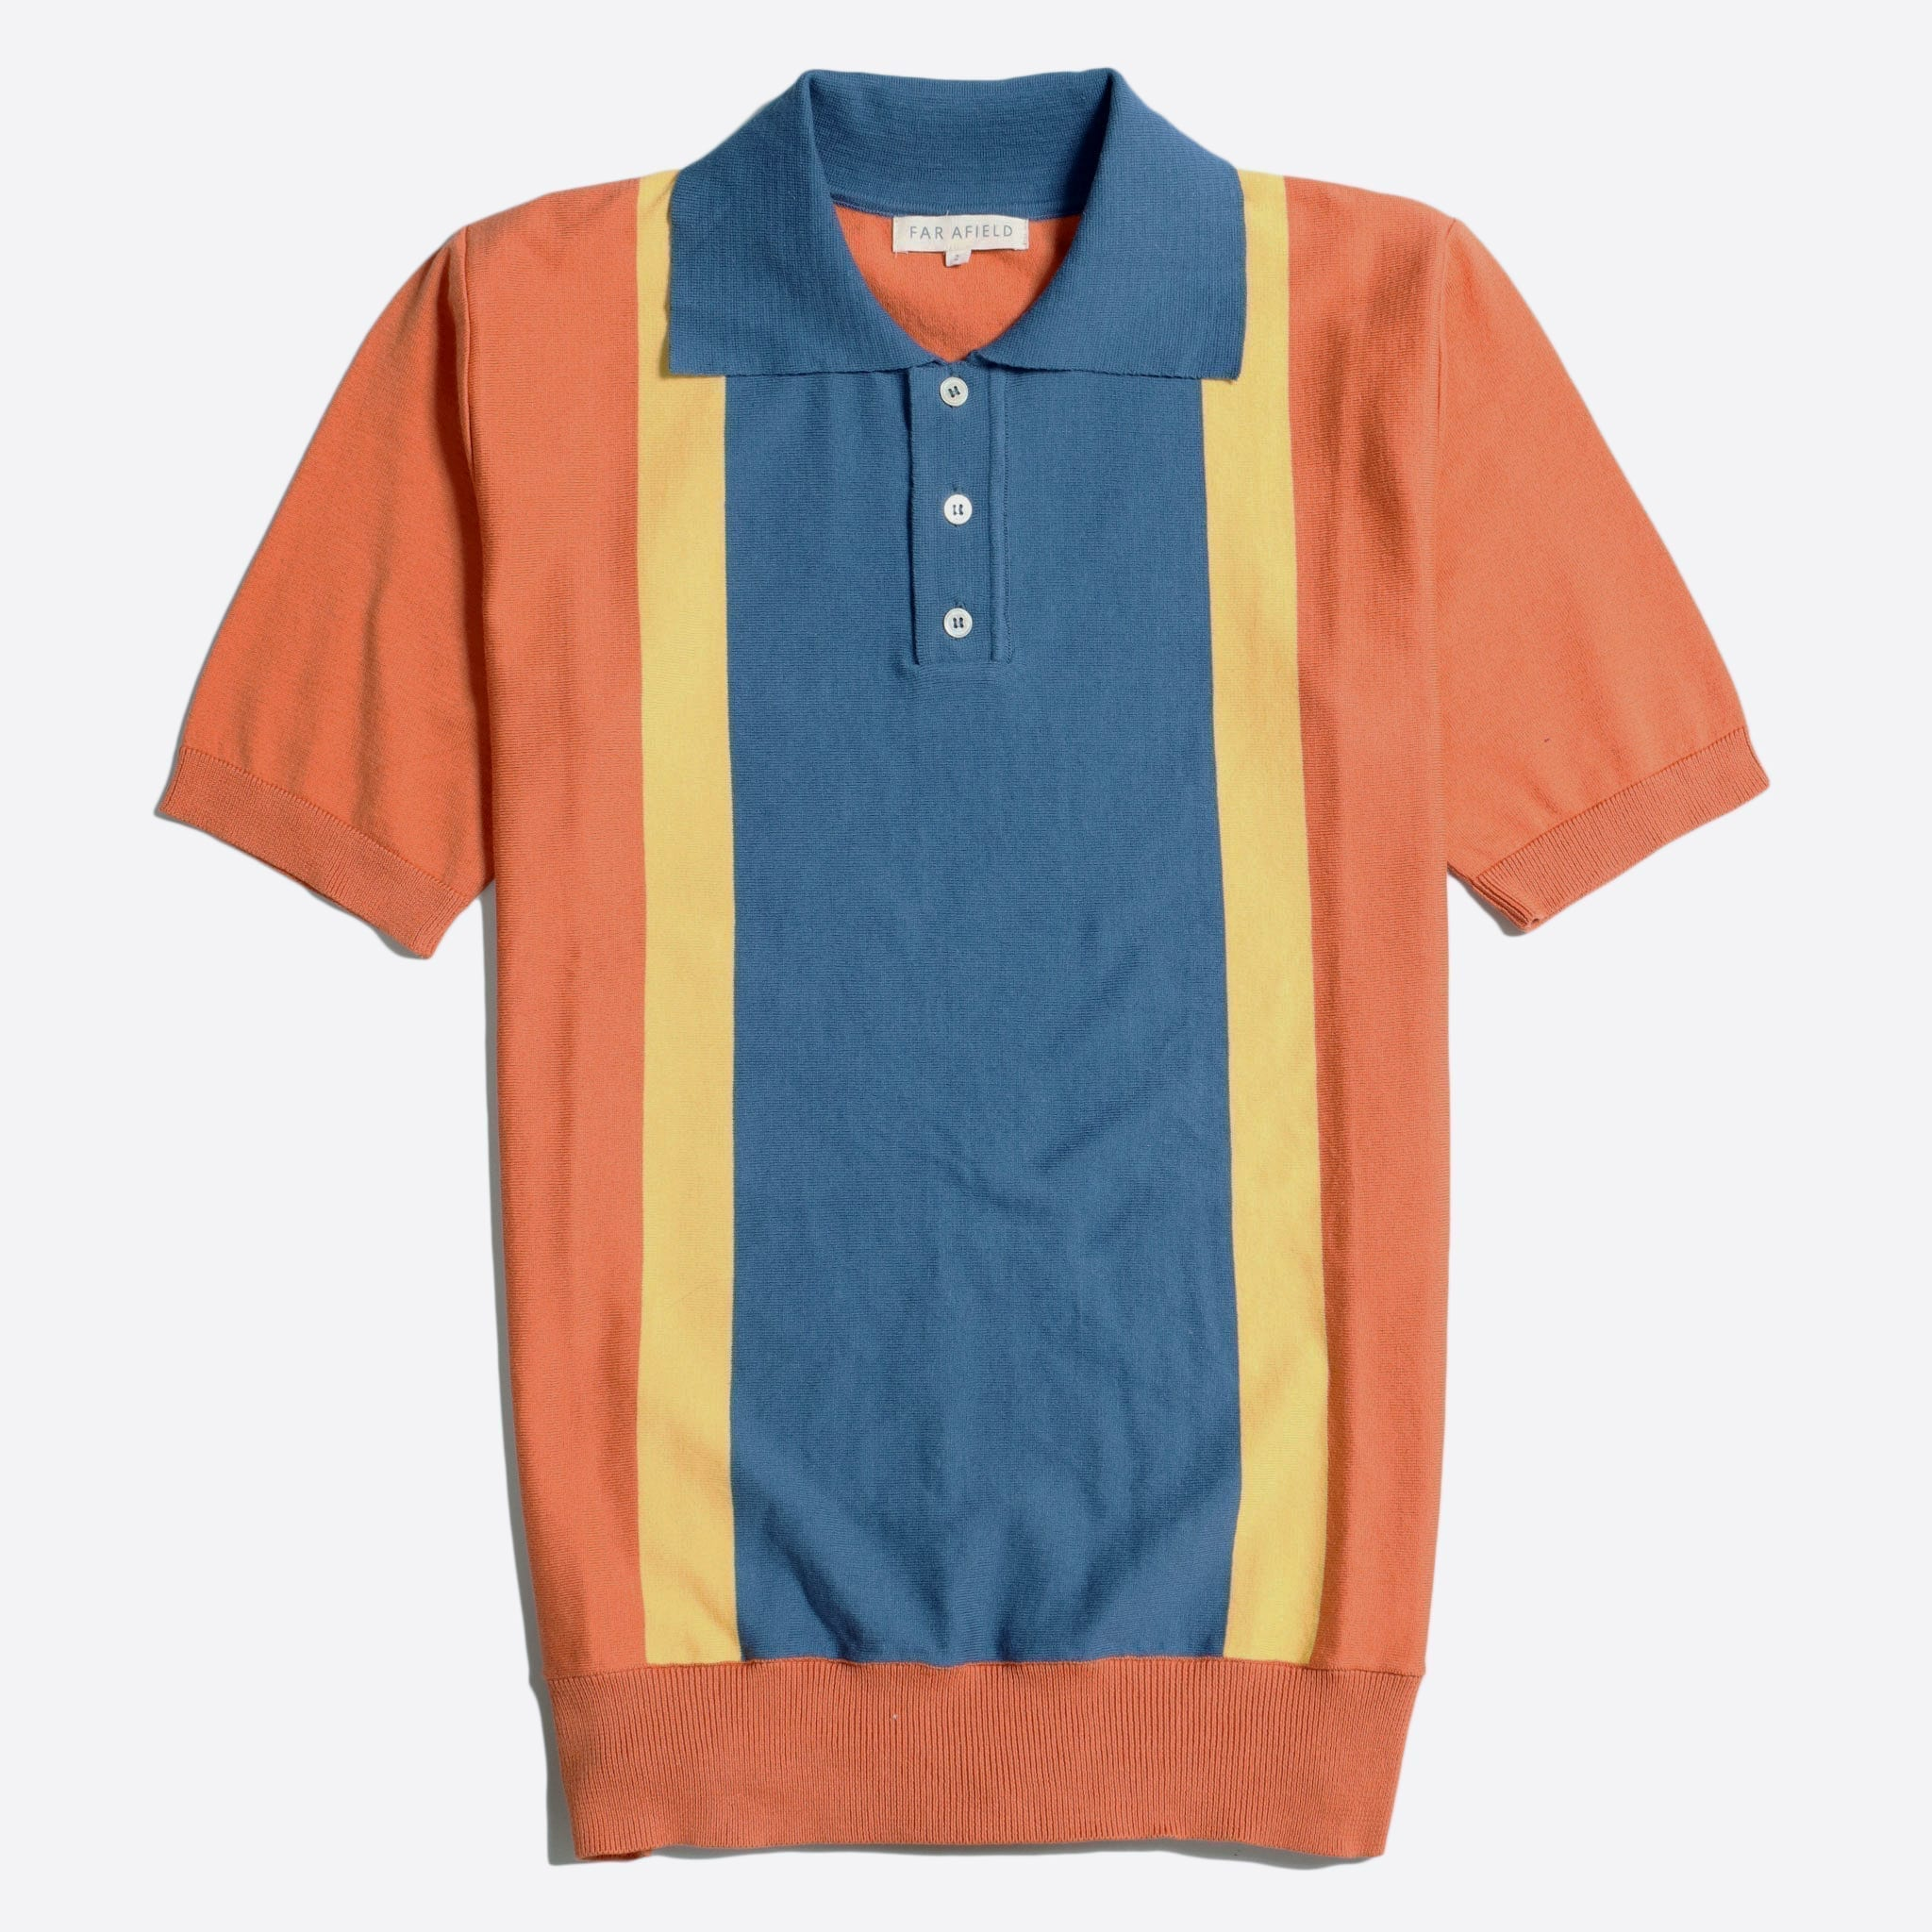 Far Afield Cole Trio Short Sleeve Polo a Arabesque Orange/Ensign Blue Organic Cotton FabricMid Century Inspired